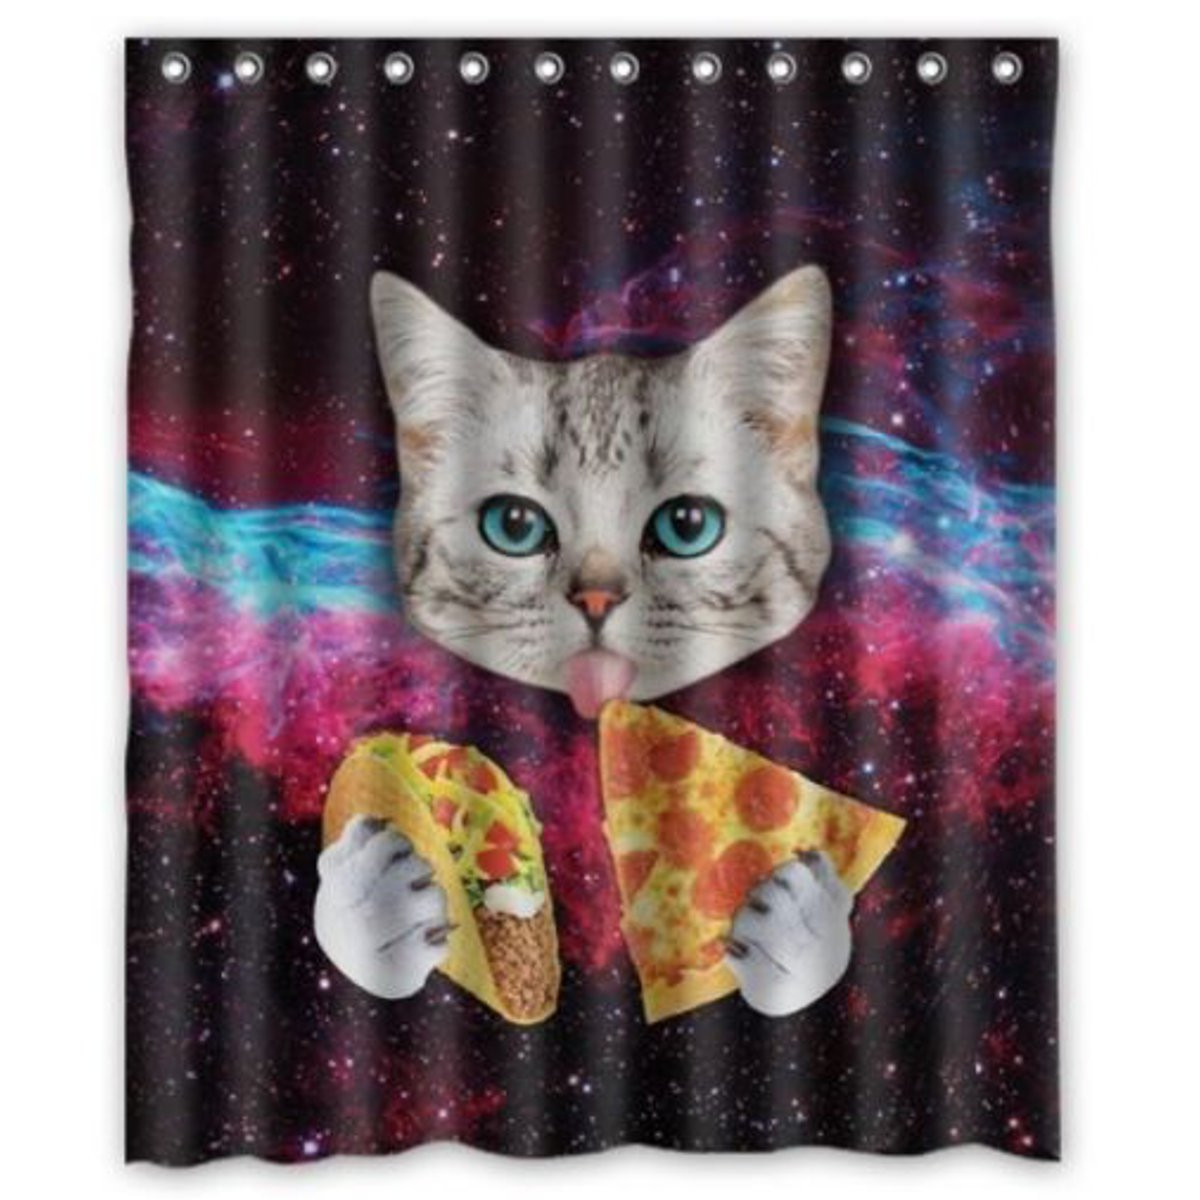 Space Nebula Cat Eating Pizza Home Bathroom Shower Curtain Polyester Hook Set